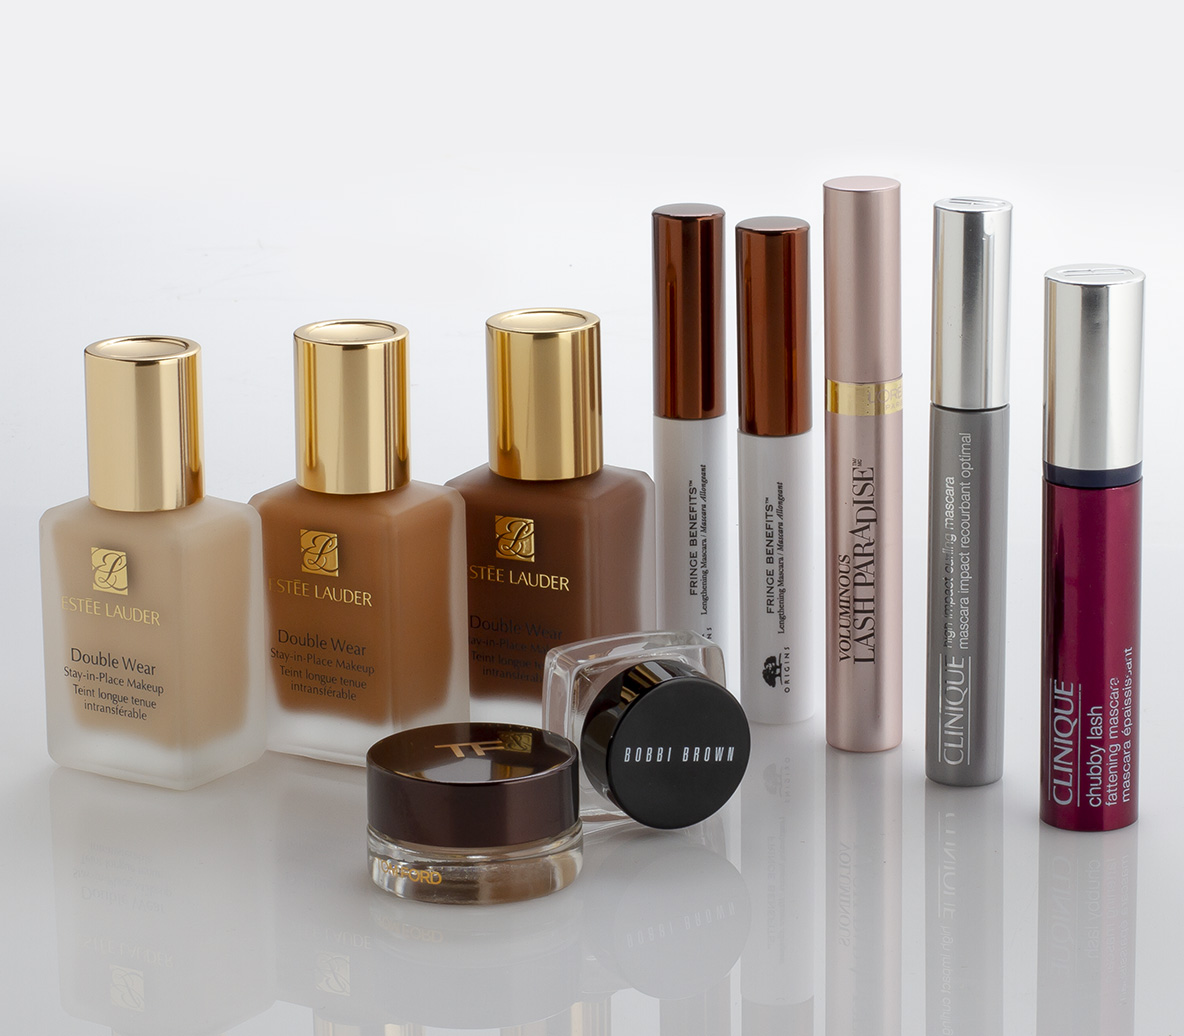 Makeup Personal Care Fragrance